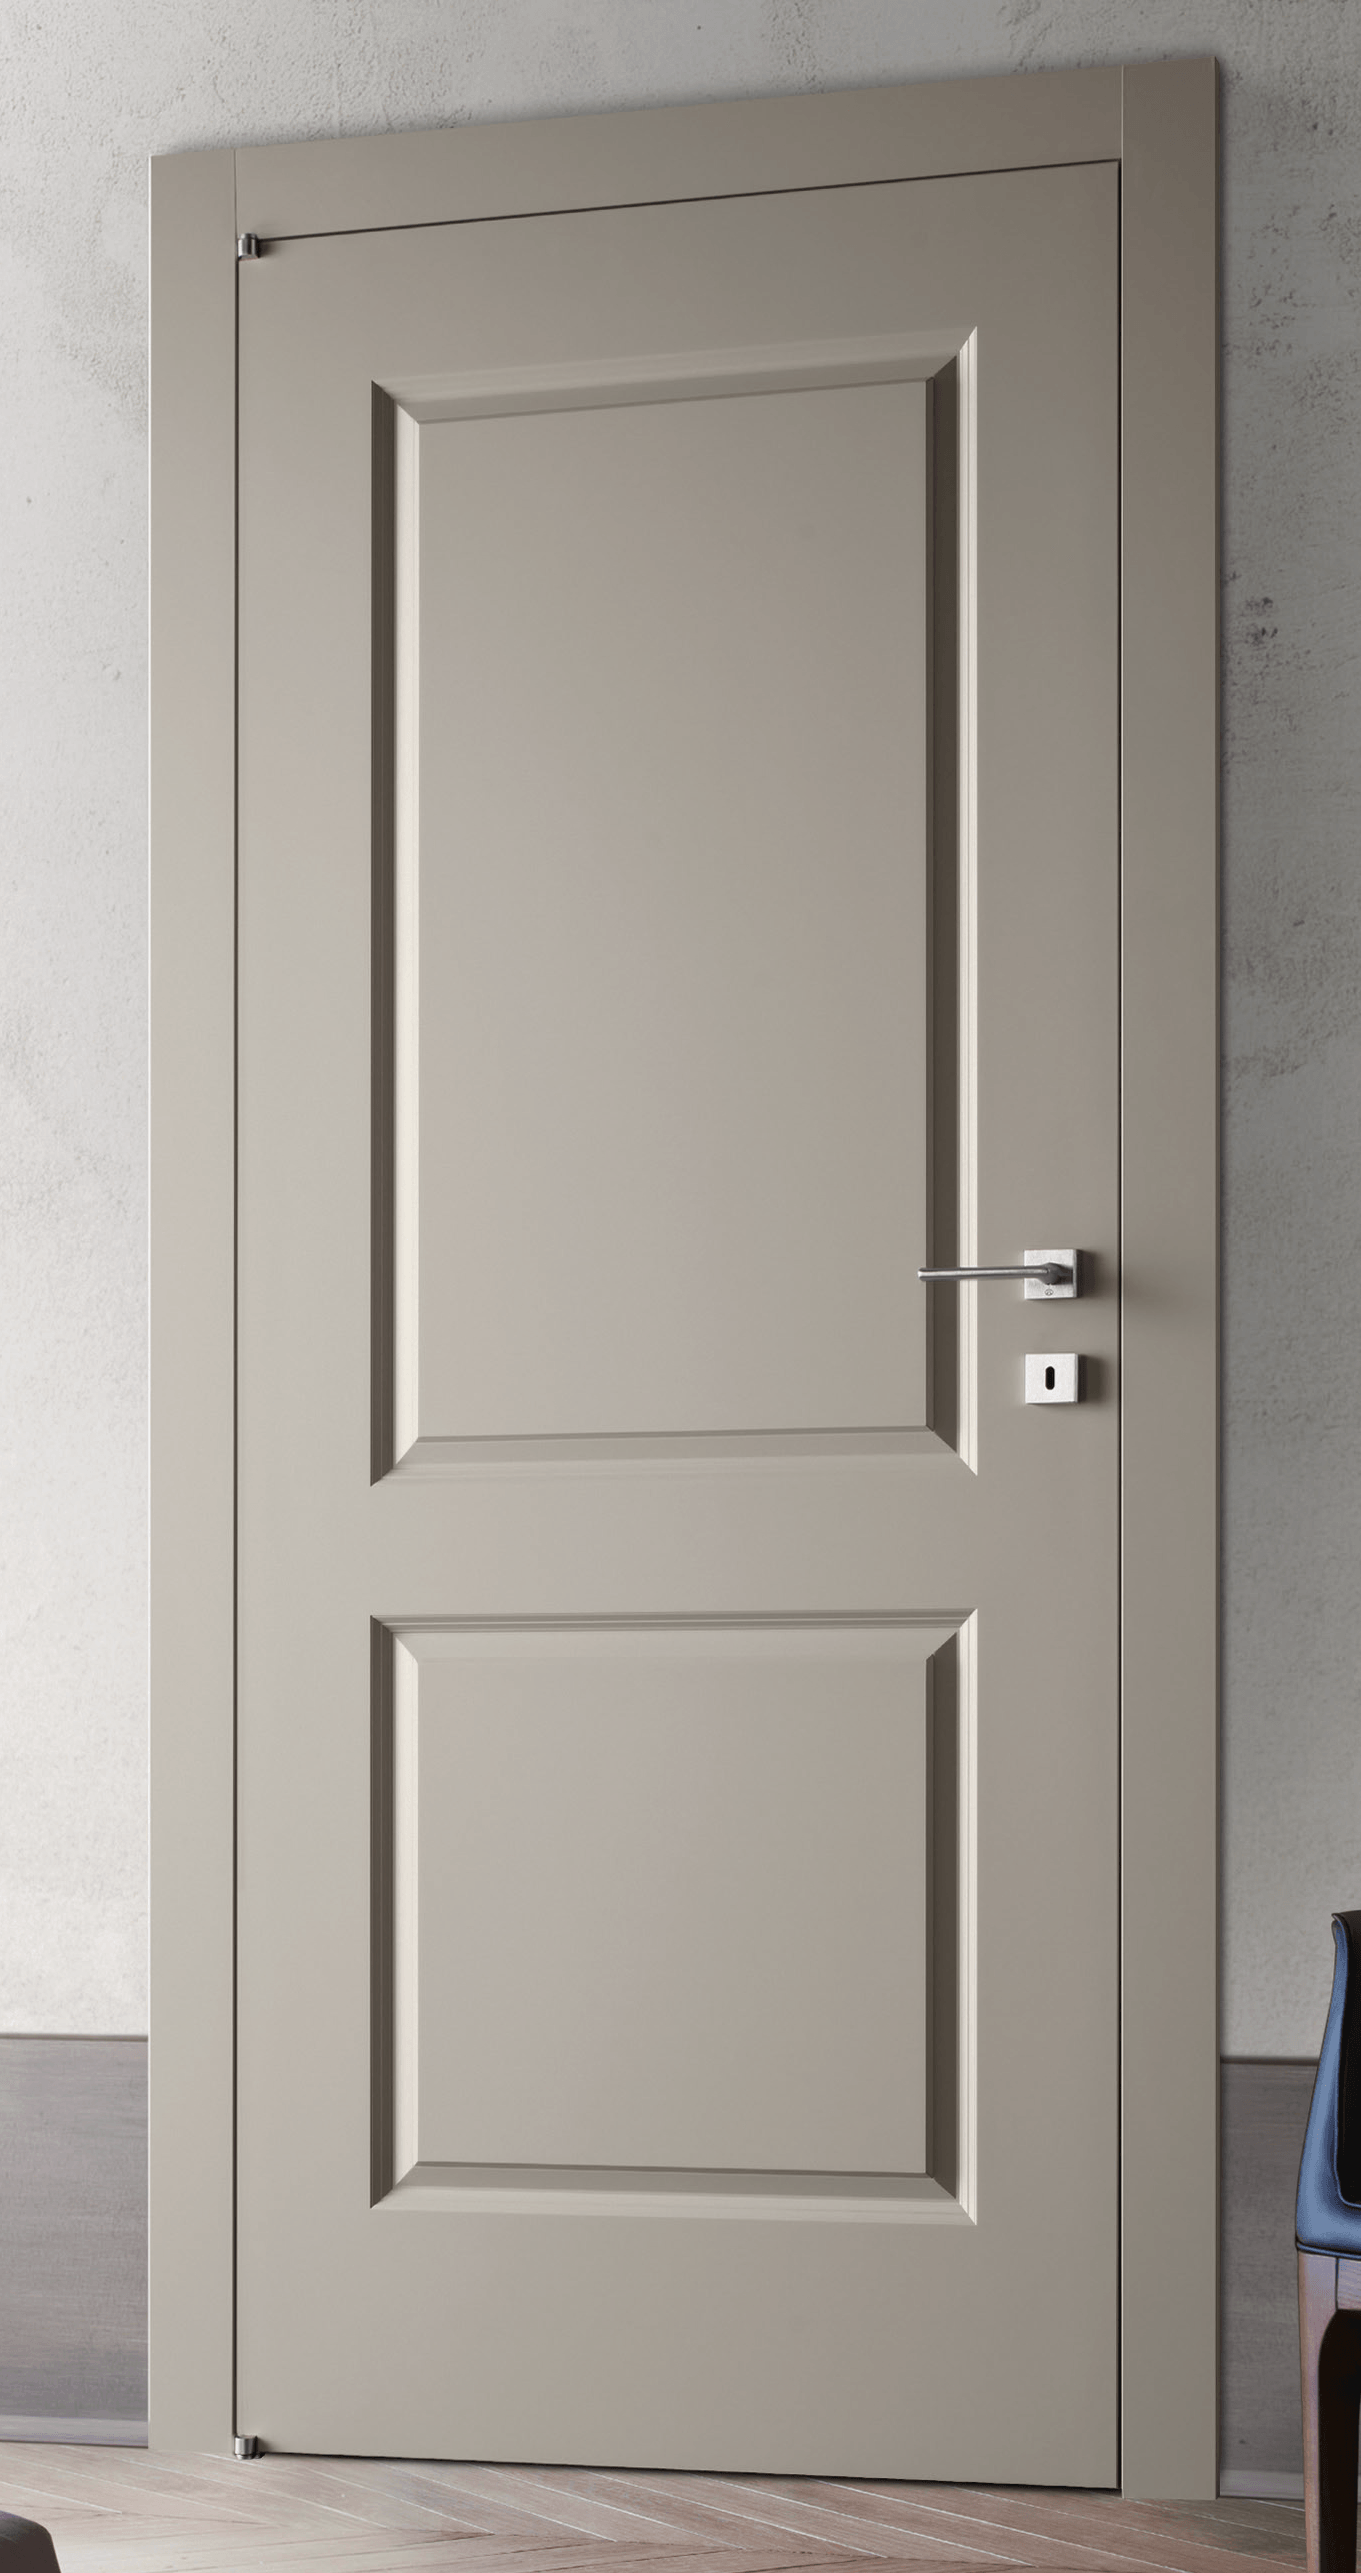 Porte interne leroy merlin porte in legno grezzo leroy for Porte interno leroy merlin